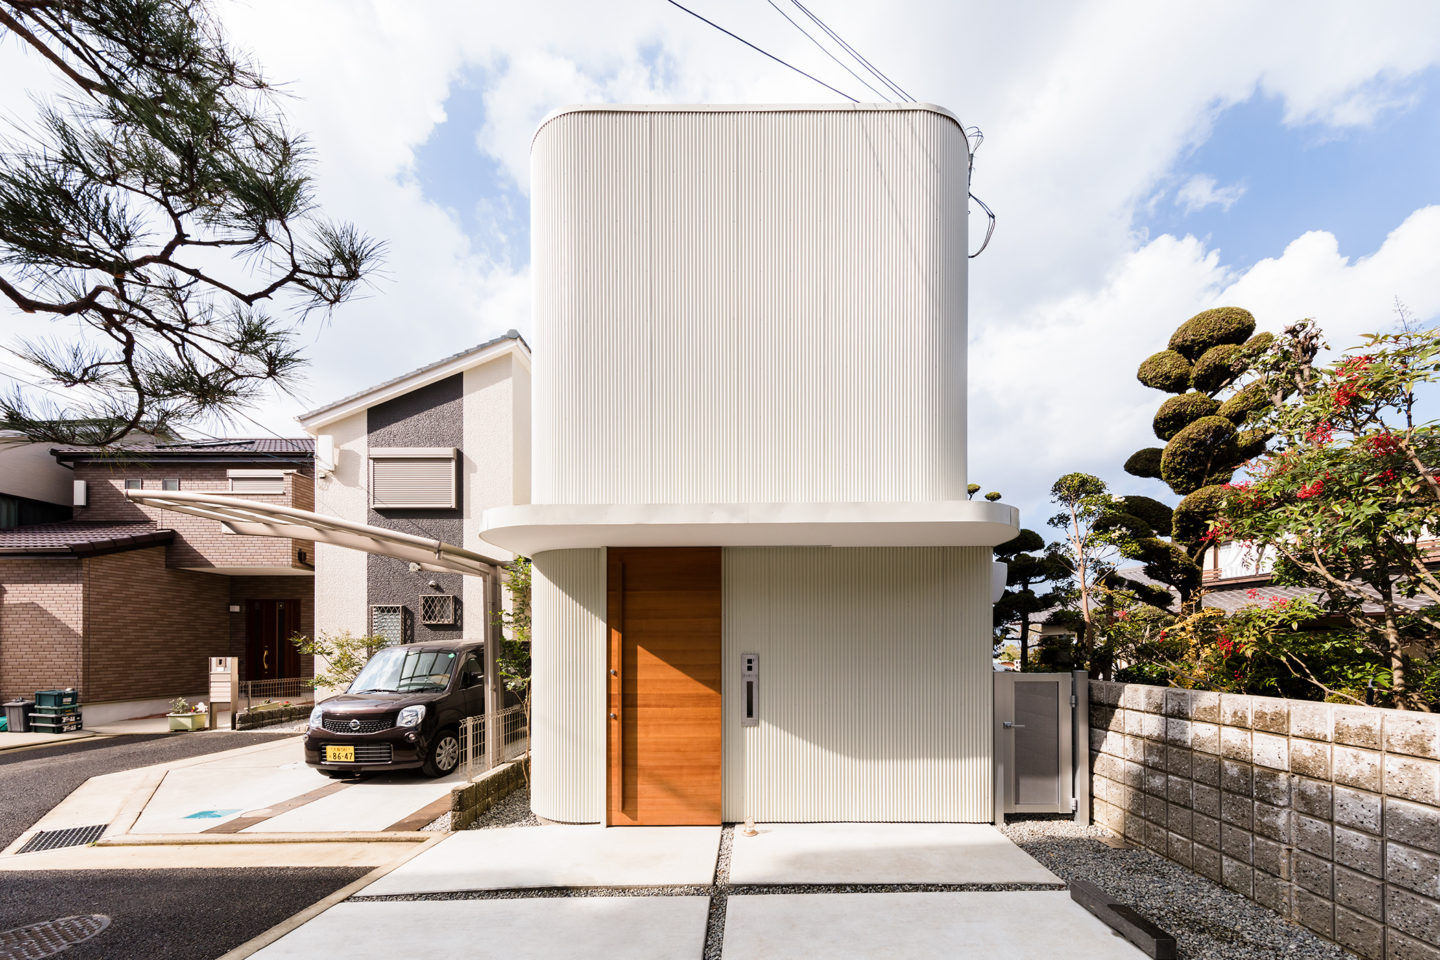 Narrow house lives large with soaring indoor garden